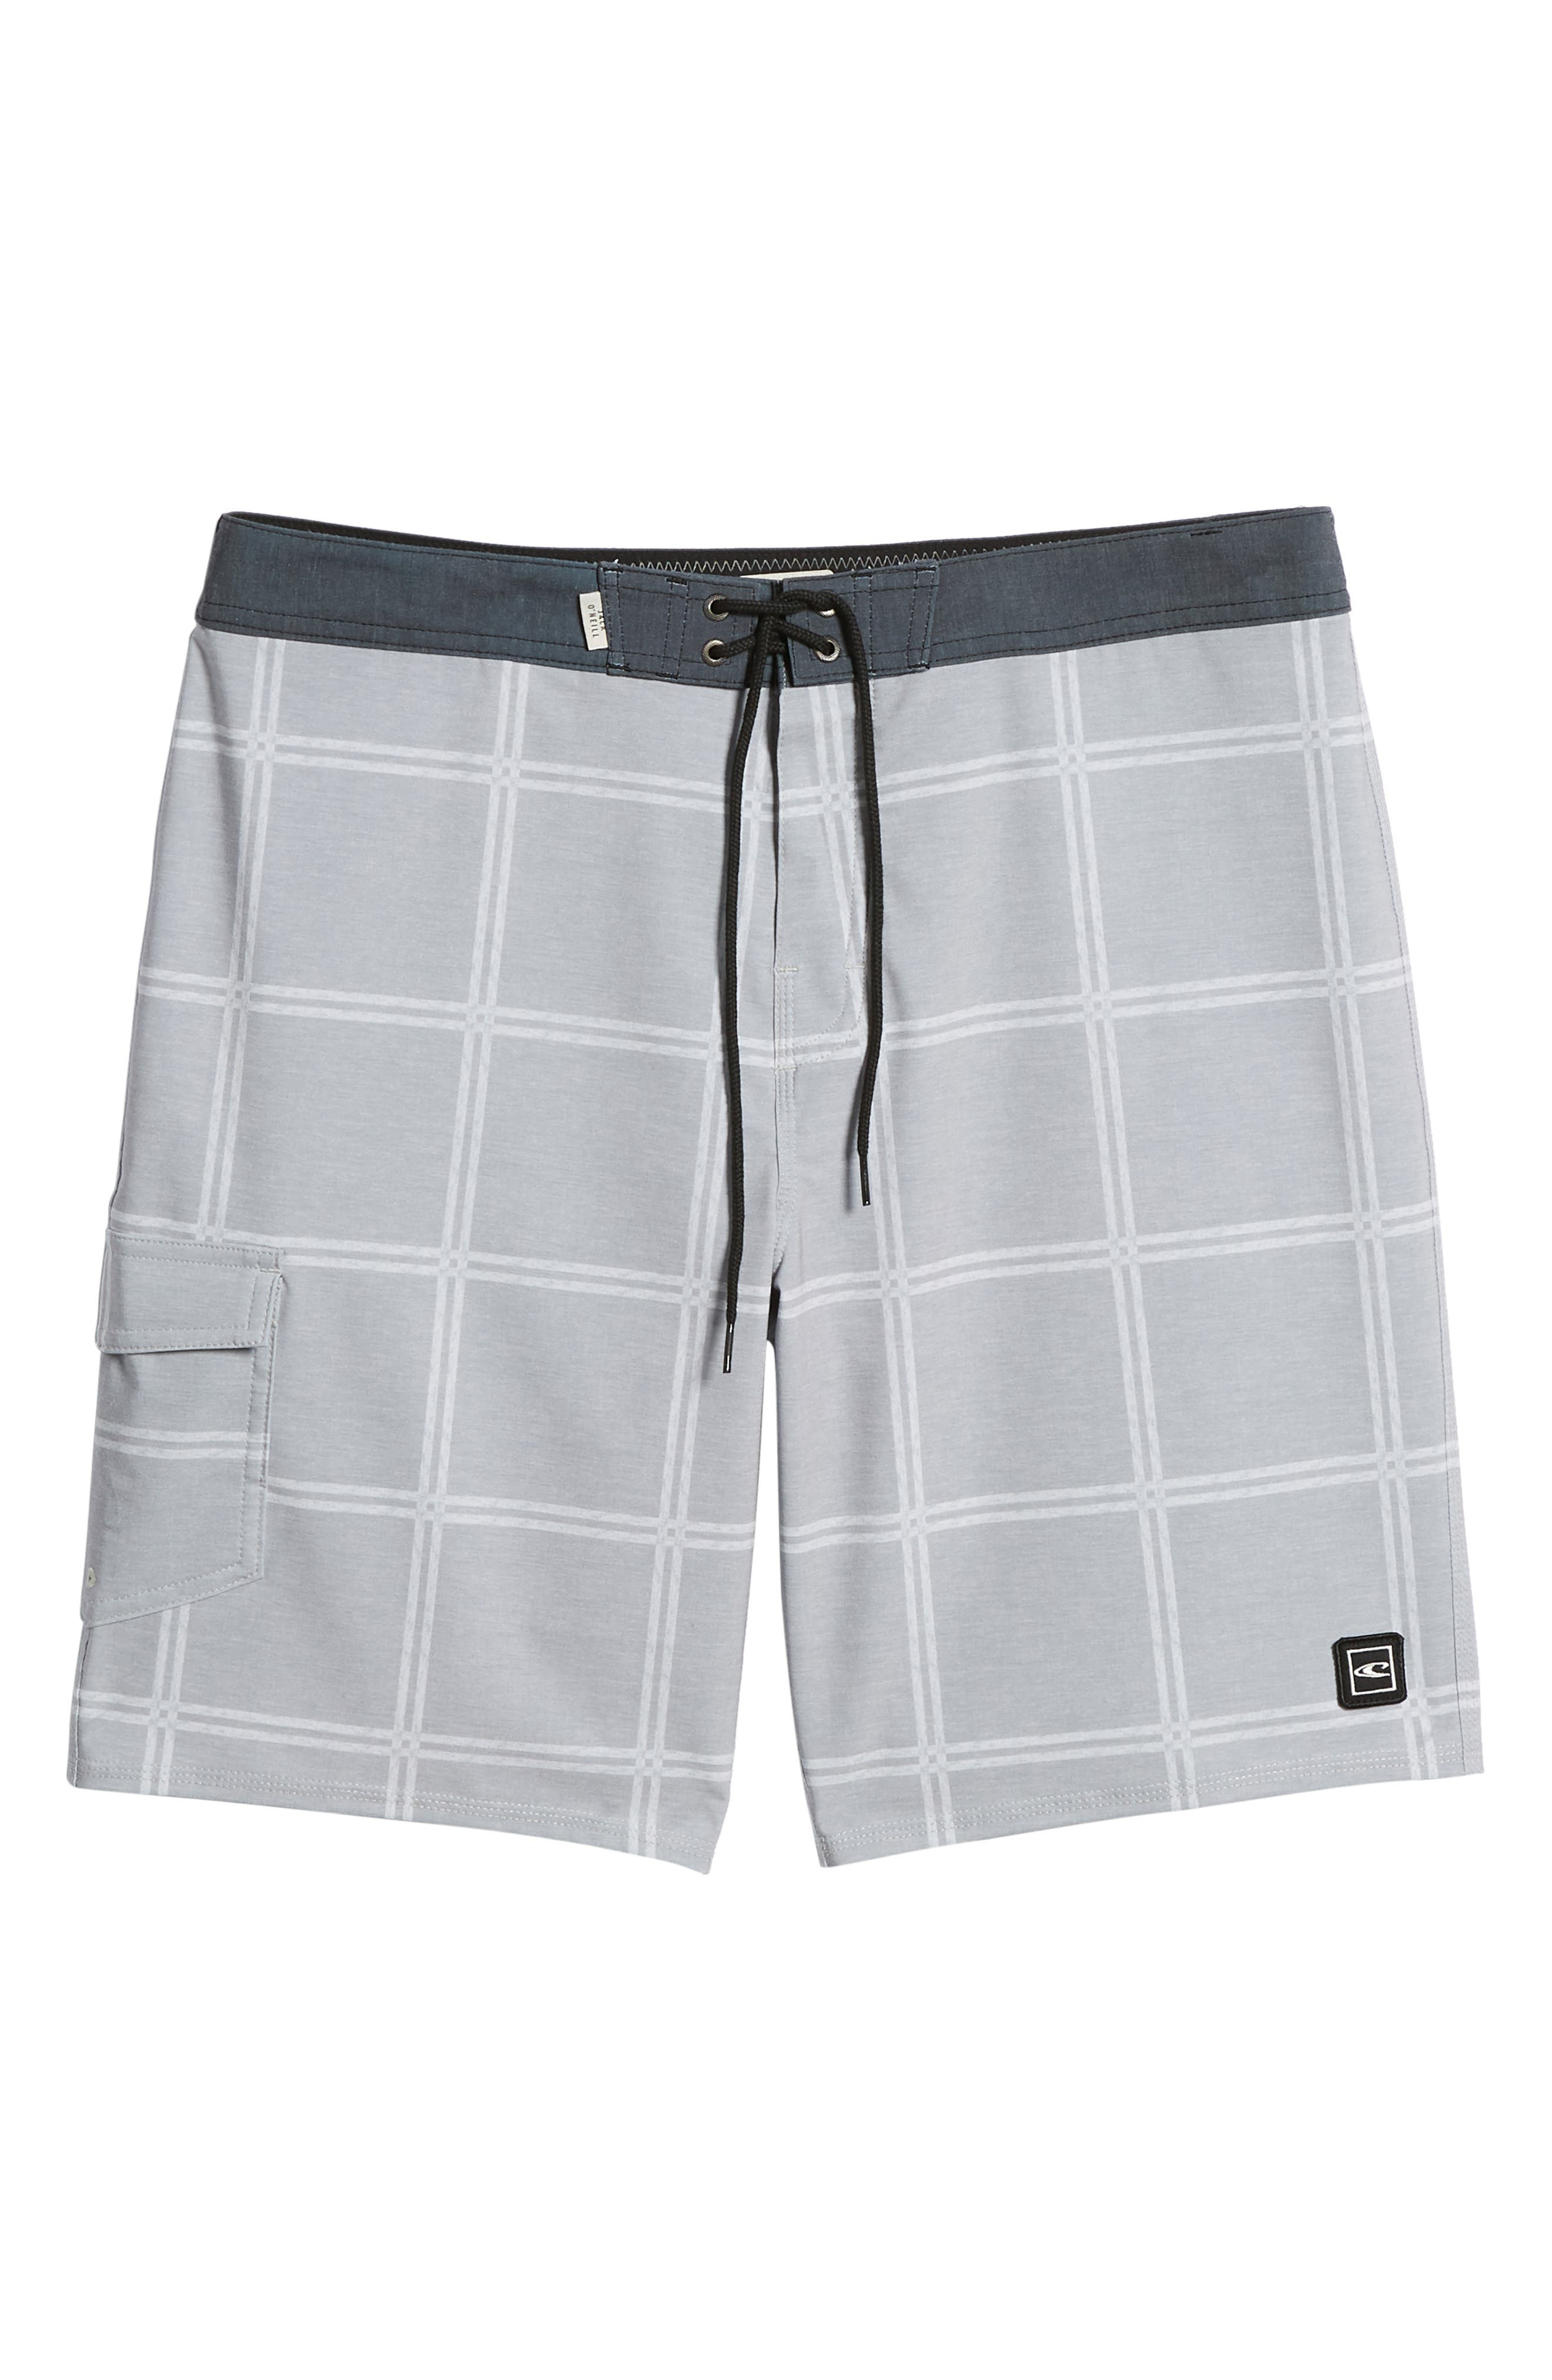 Head High Board Shorts,                             Alternate thumbnail 6, color,                             Light Grey